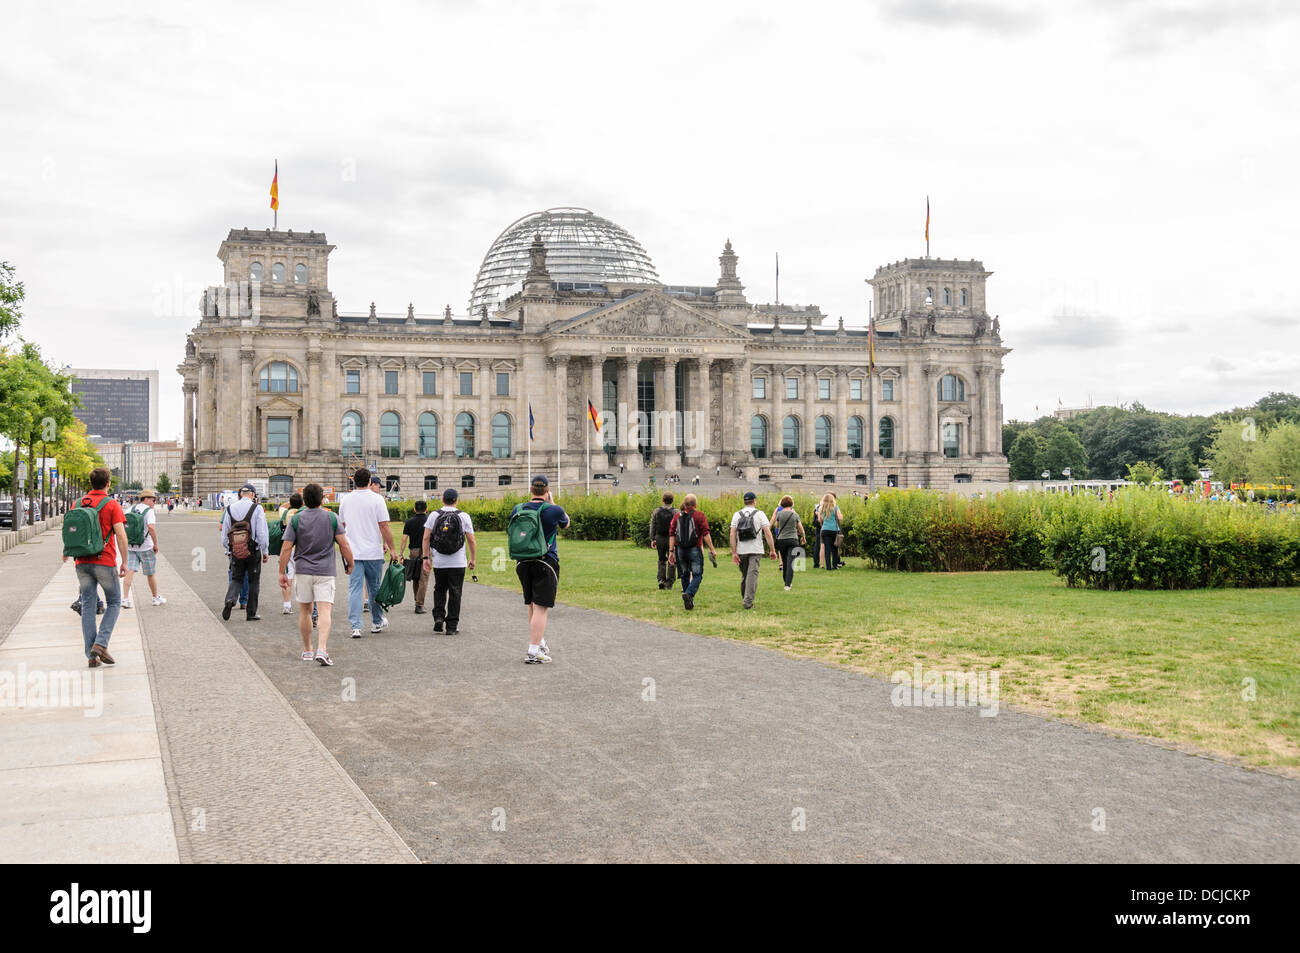 Visitors, tourists approaching the Reichastag building - Berlin Germany Stock Photo